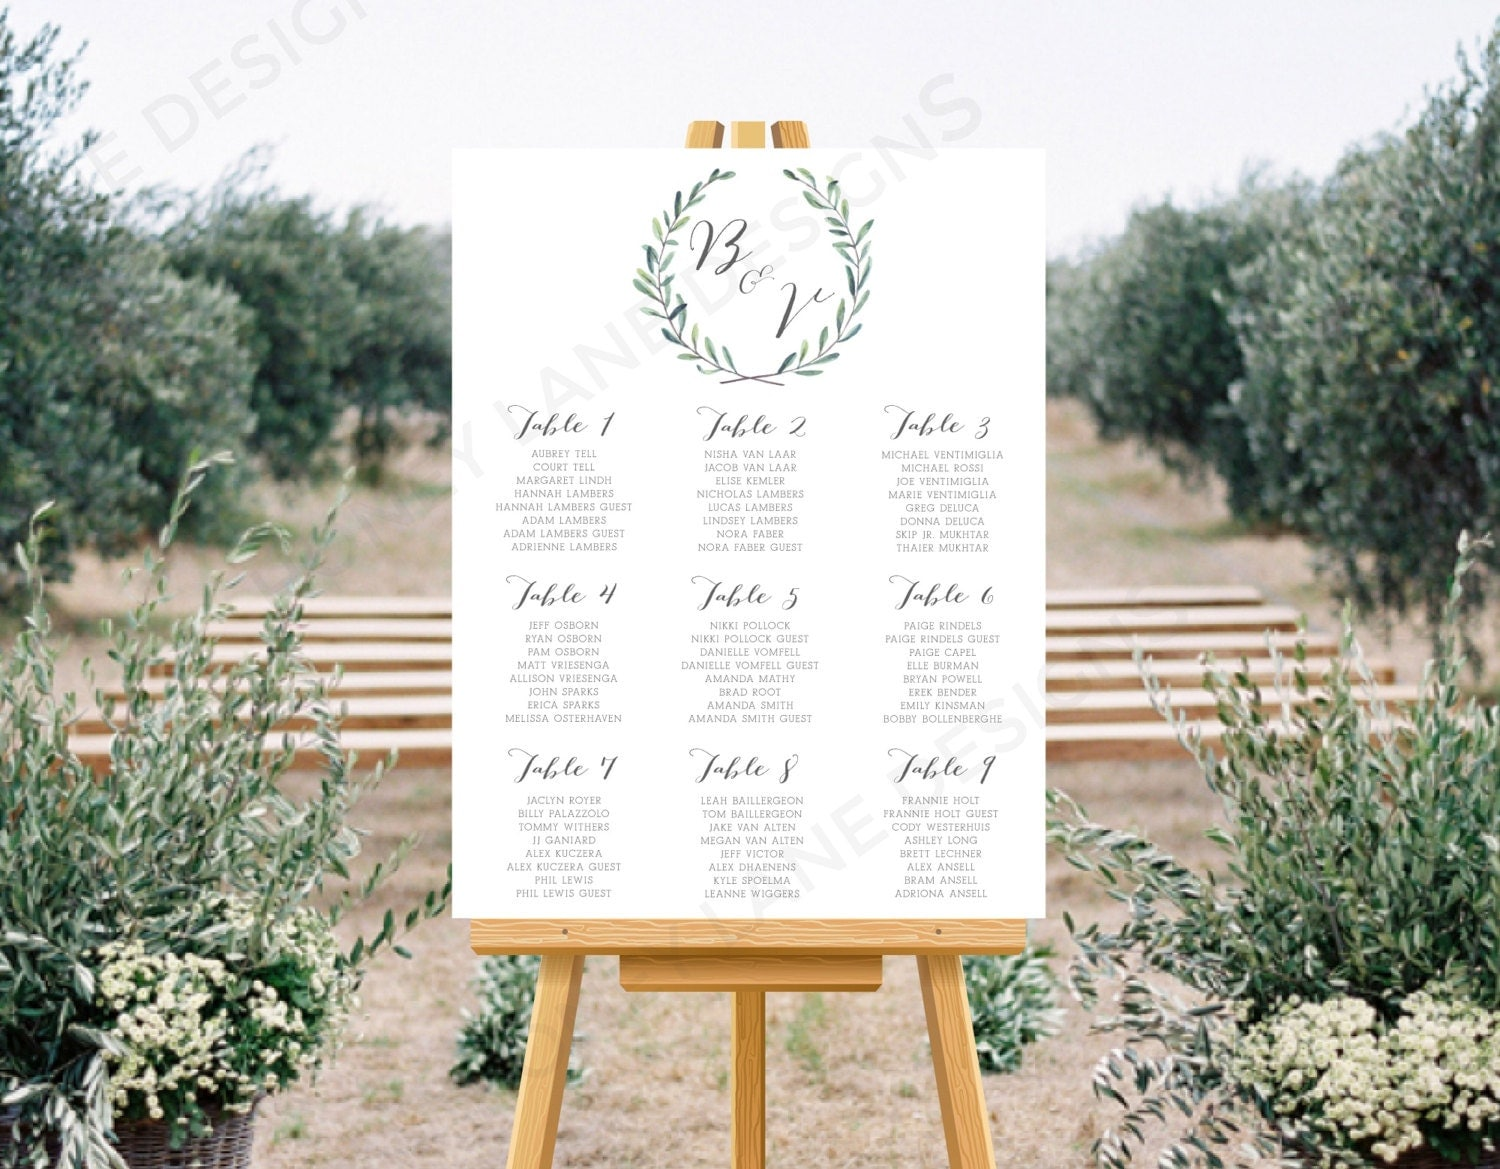 Personalised Printable Wedding Seating Chart Wedding Table Plan  Bethany Wreath Collection